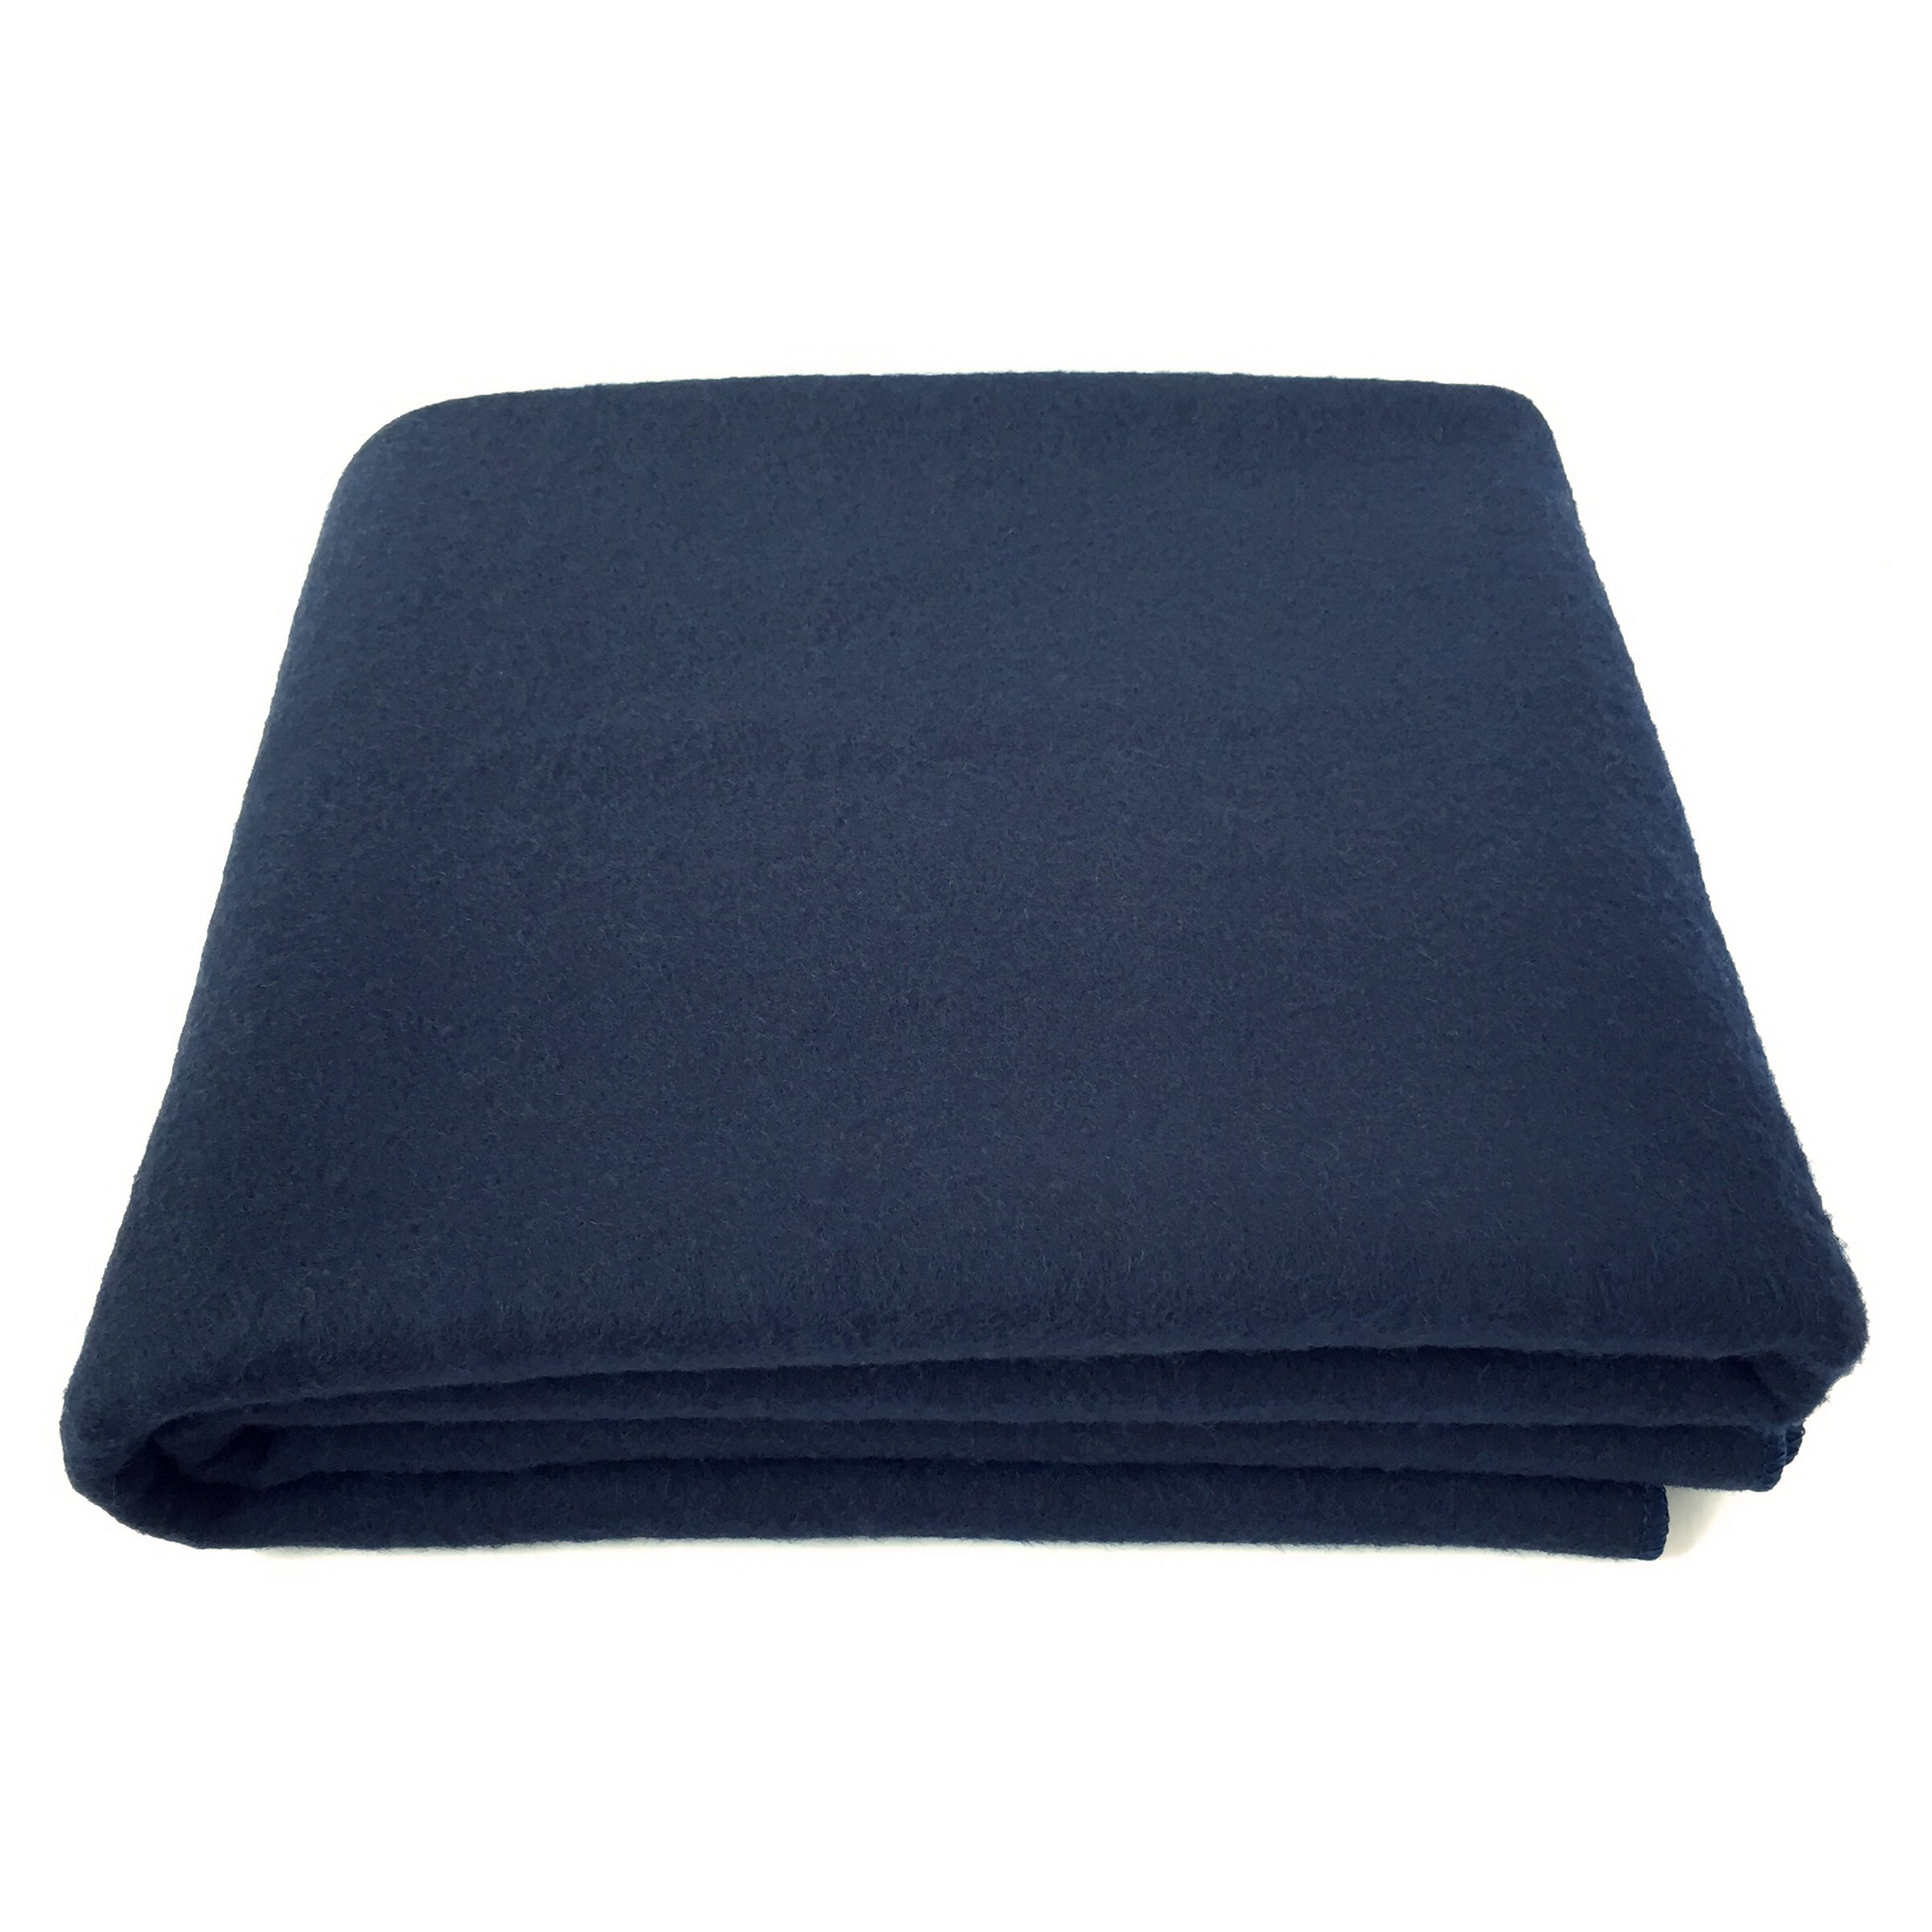 EKTOS 100% Wool Blanket, Navy Blue, Warm & Heavy 5.5 lbs, Large Washable 66''x90'' Size, Perfect for Outdoor Camping, Survival & Emergency Preparedness Use